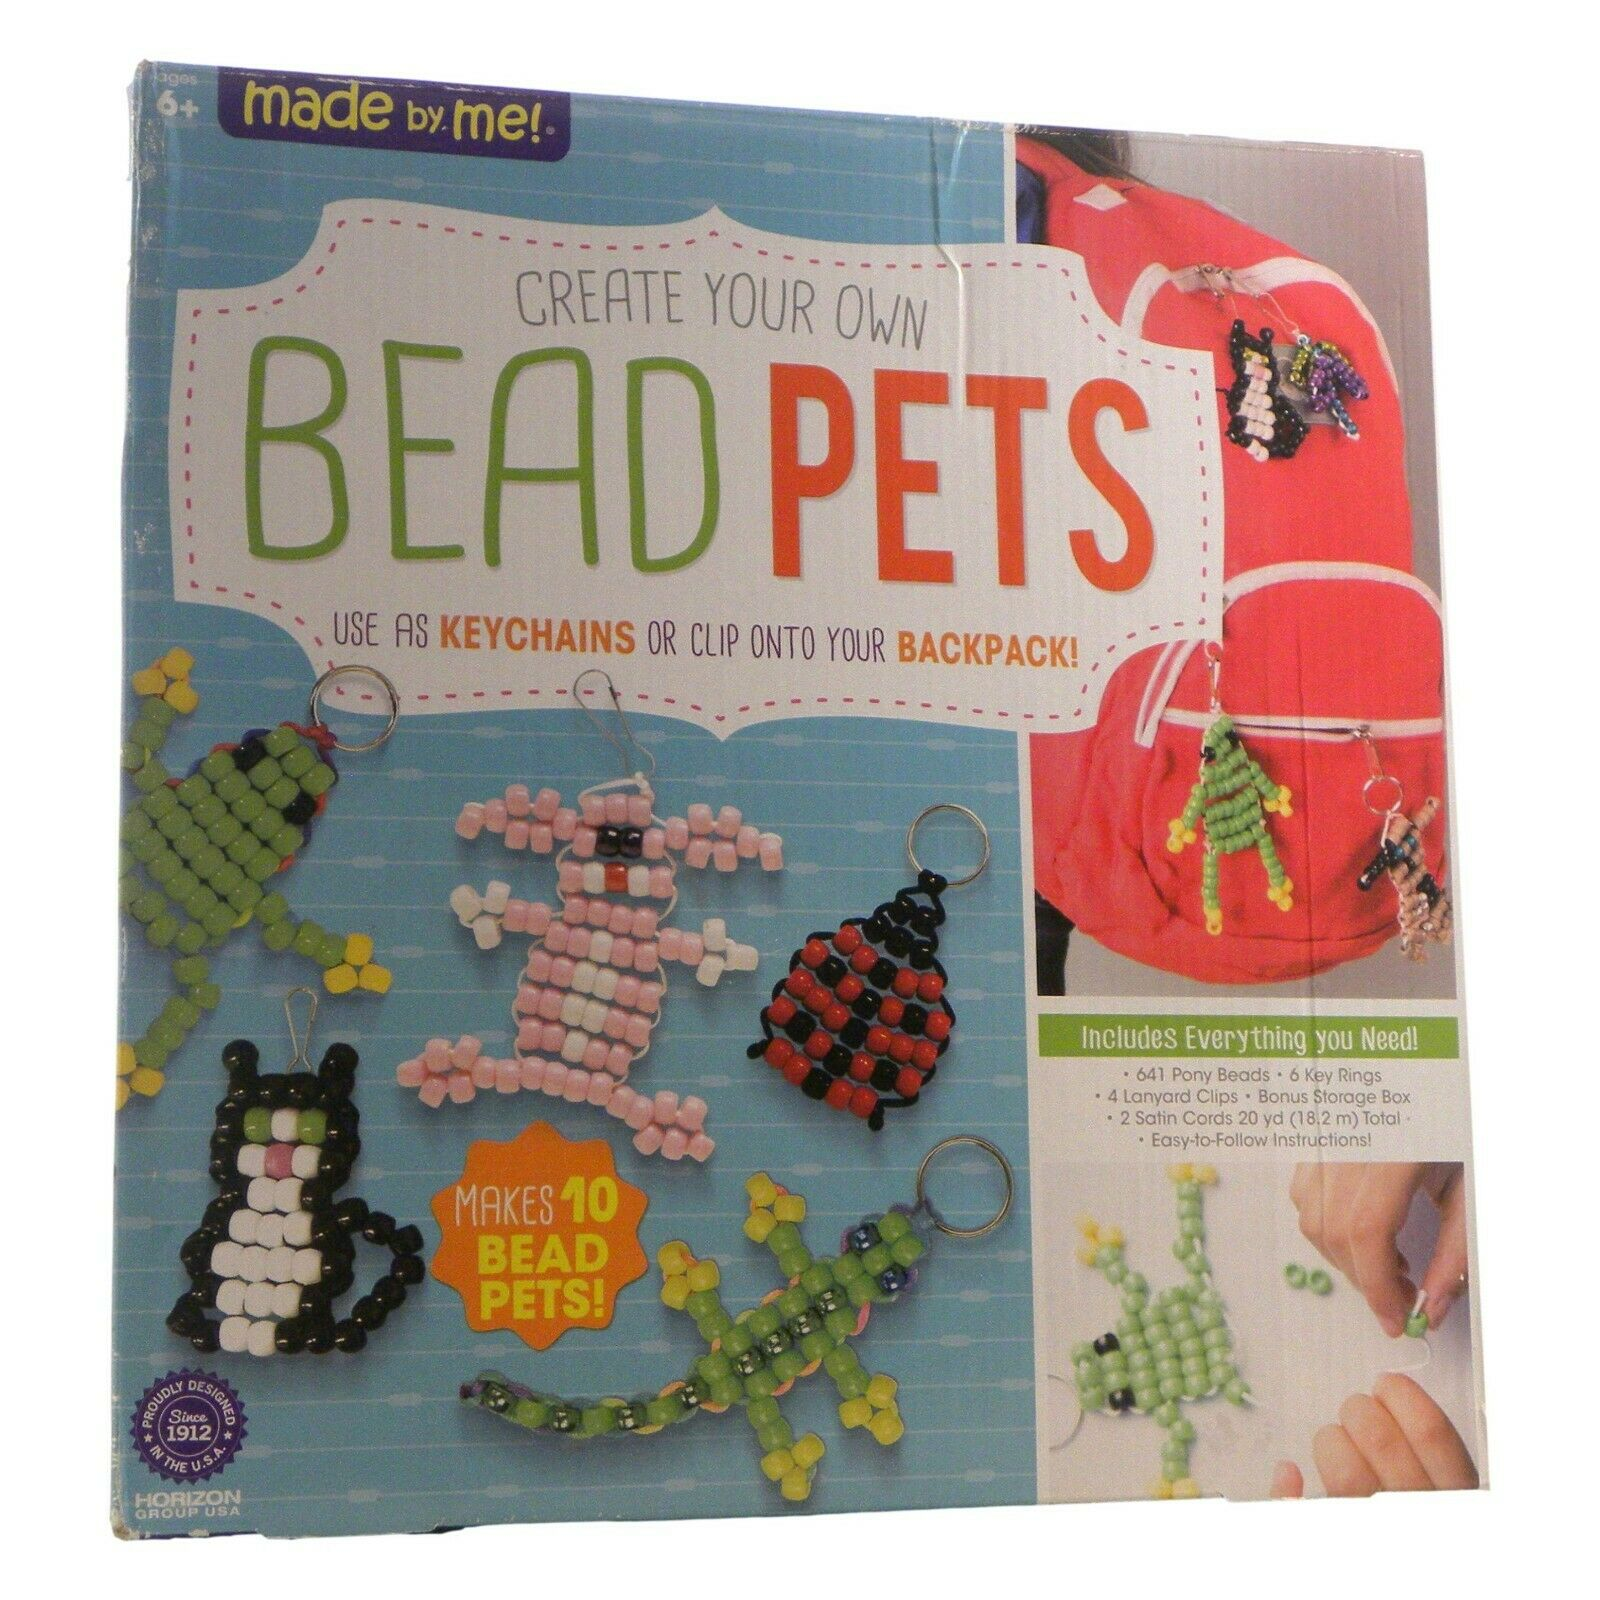 Includes Over 600 Pony Beads 6 Key Rings Storage Box /& Much More Made By Me Create Your Own Bead Pets by Horizon Group USA